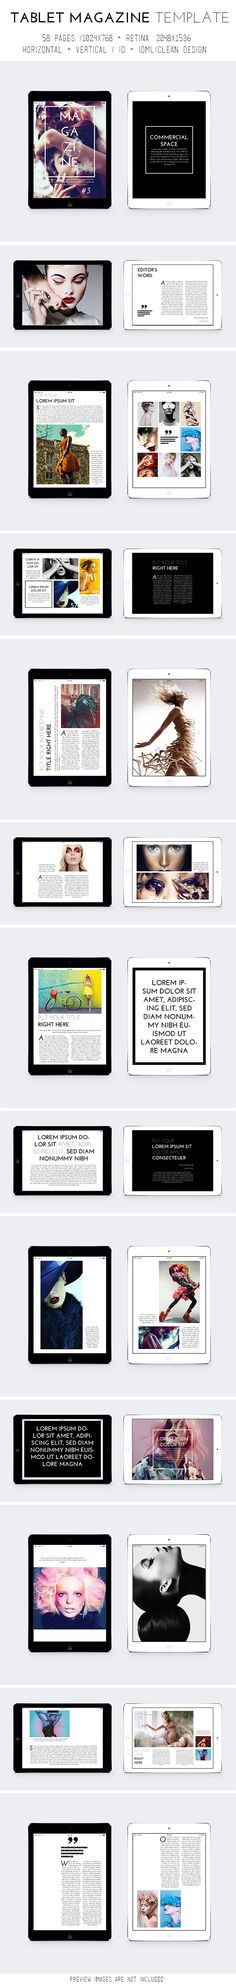 Tablet Magazine Template on Behance